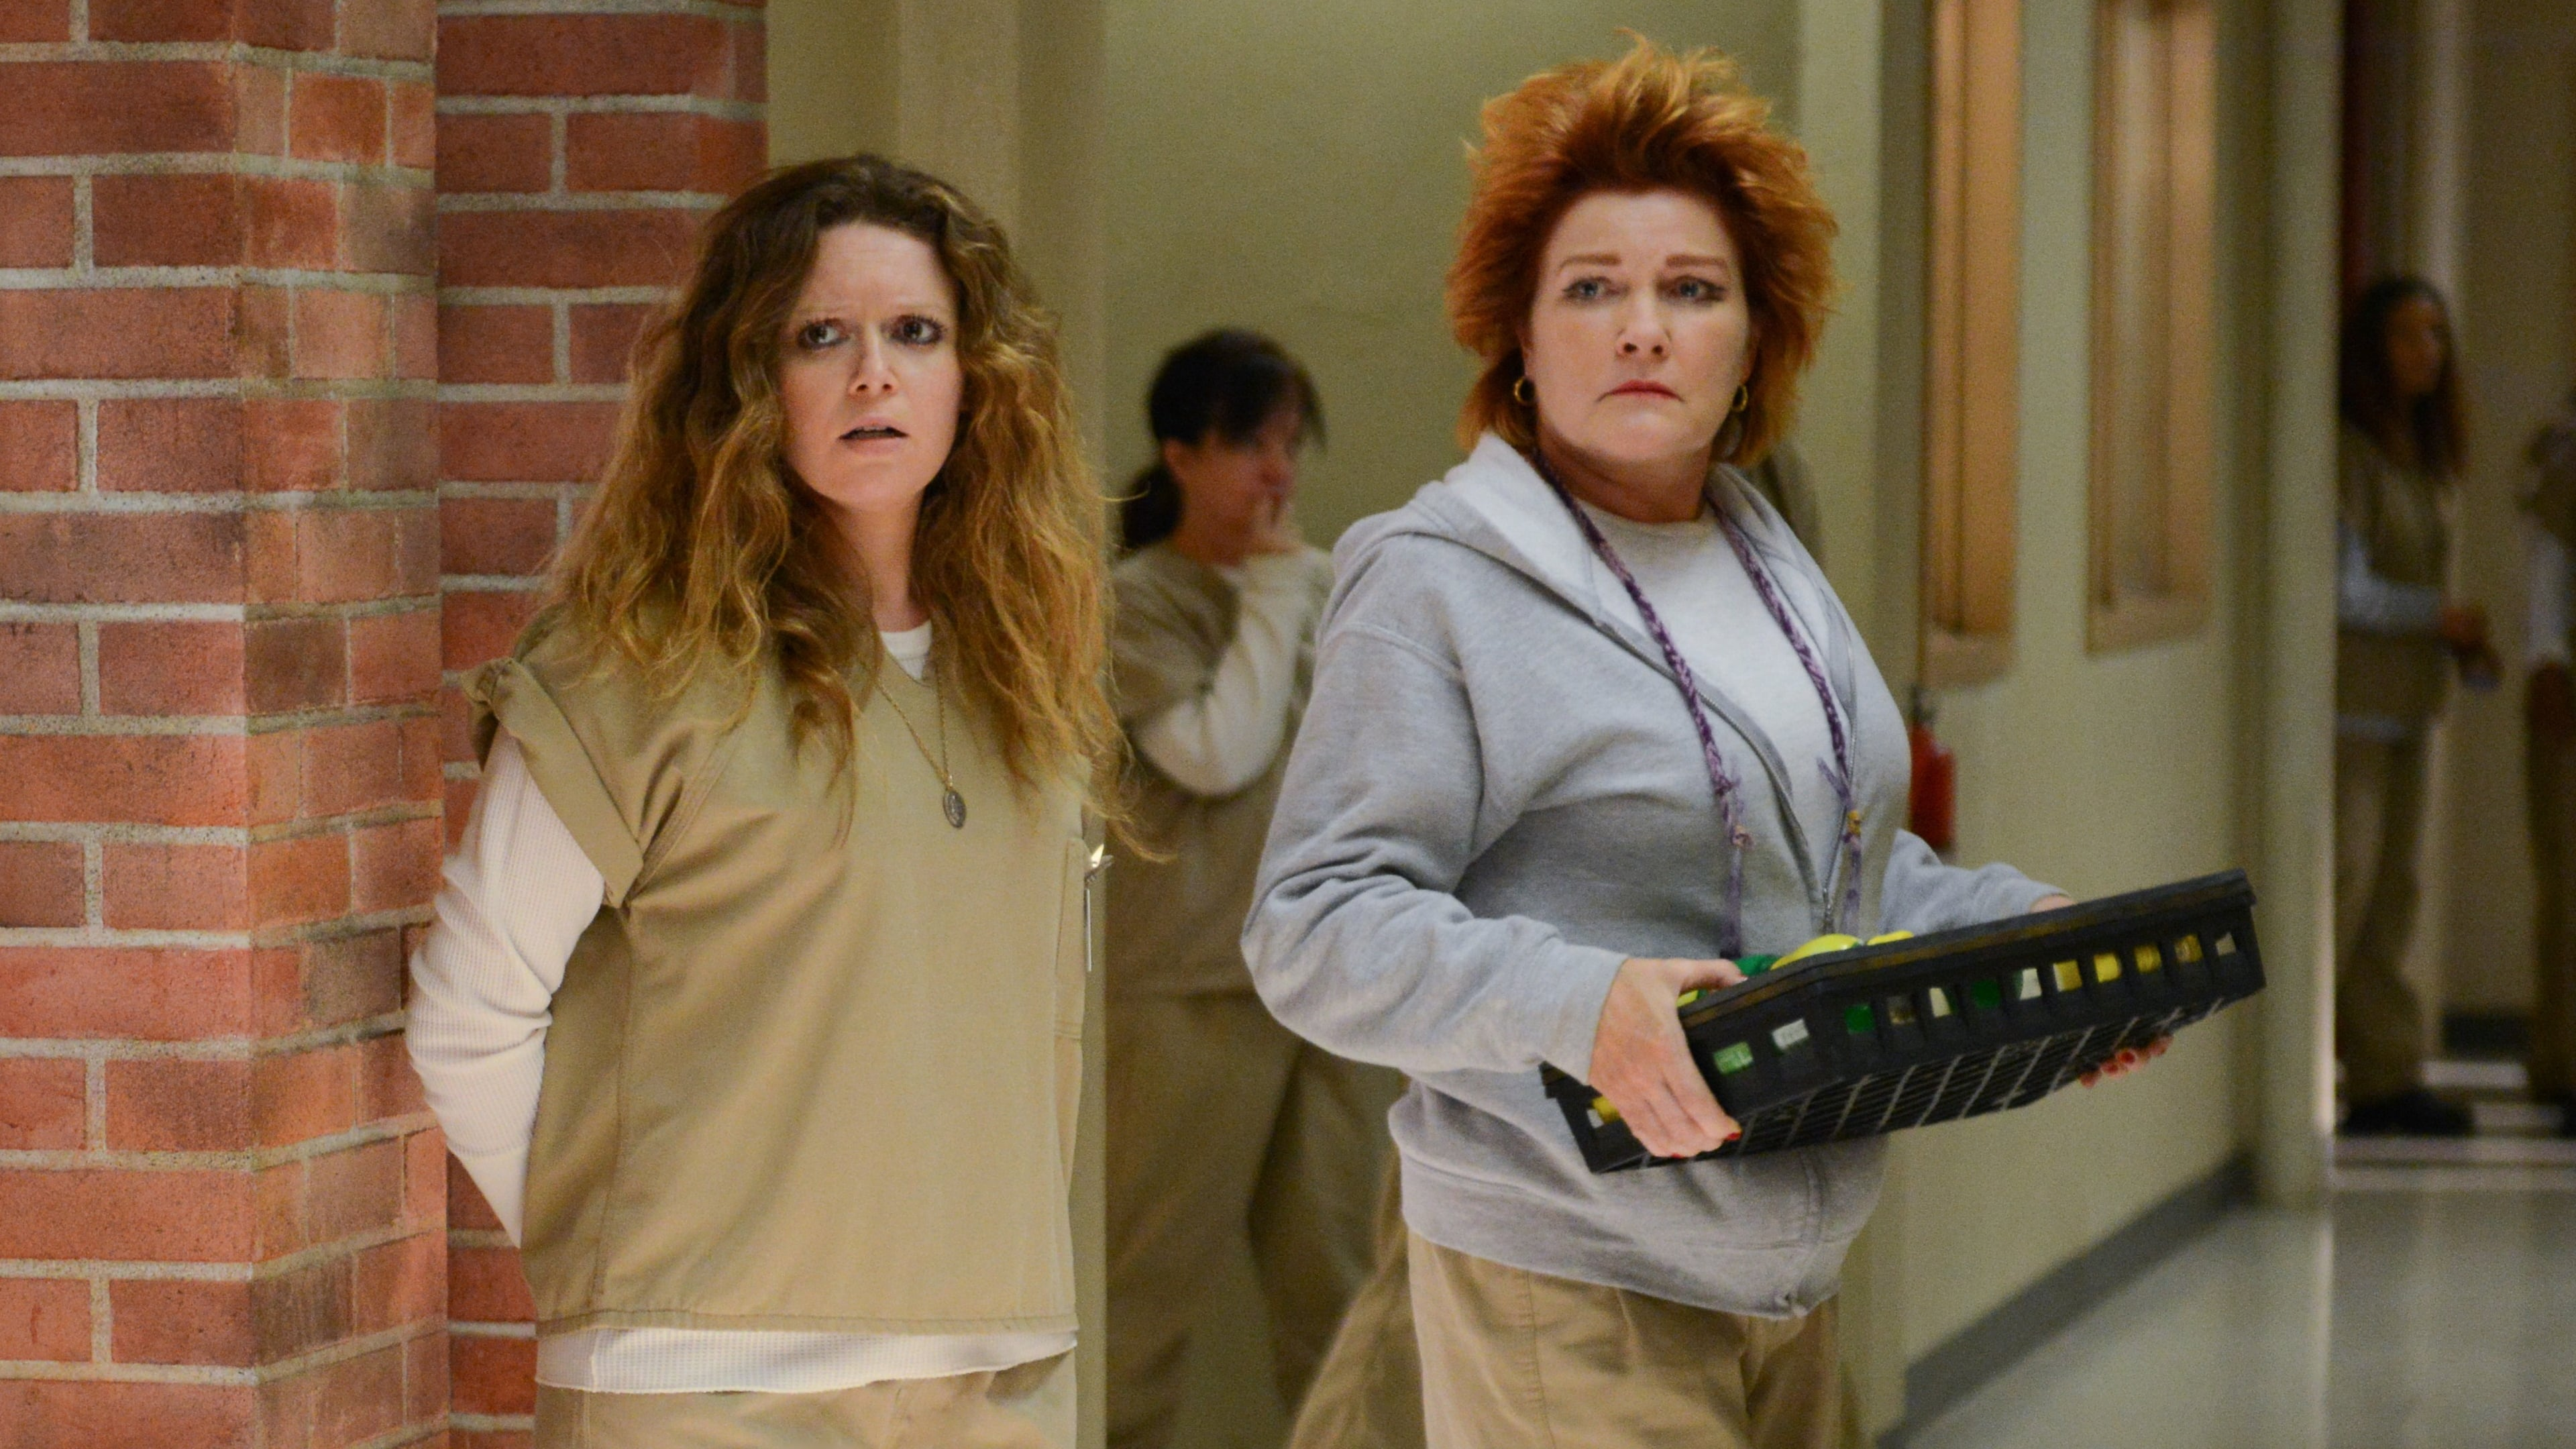 Watch Orange Is the New Black Season 2 Episode 9 full episode online Putlocker